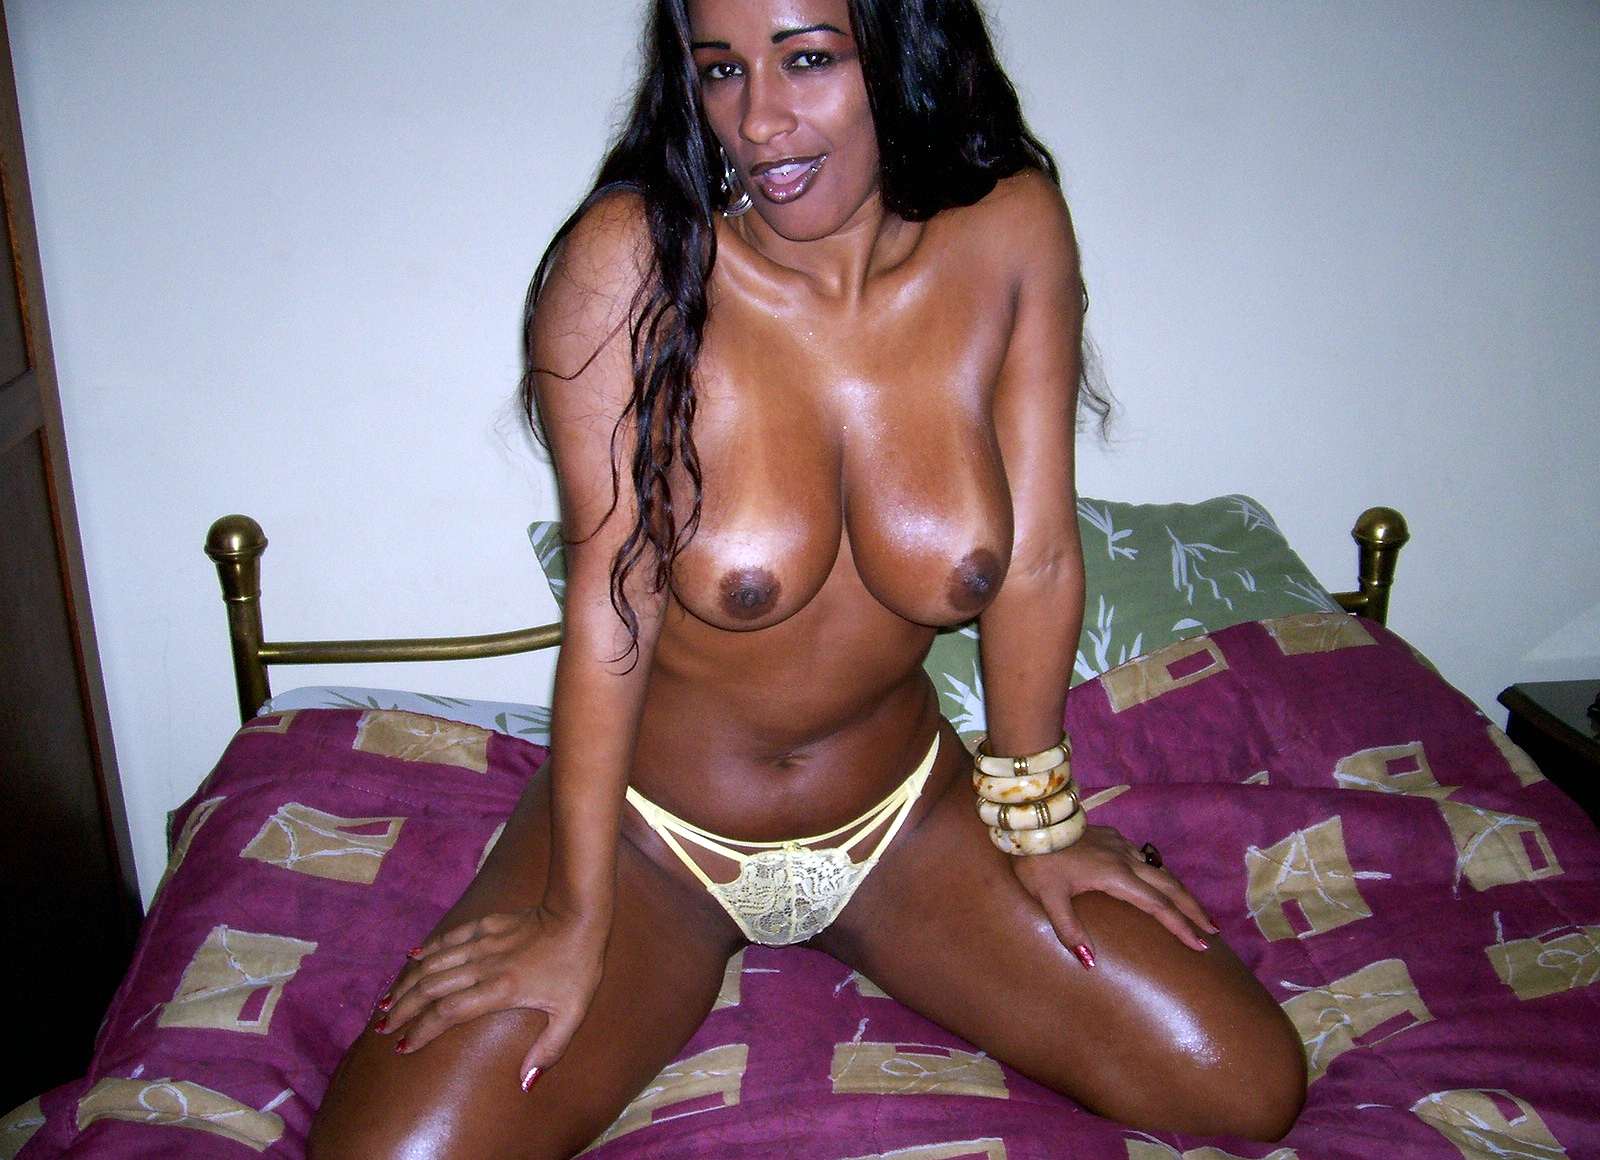 Funny Ebony Porn homemade sex pictures of amateur black housewives. image #5